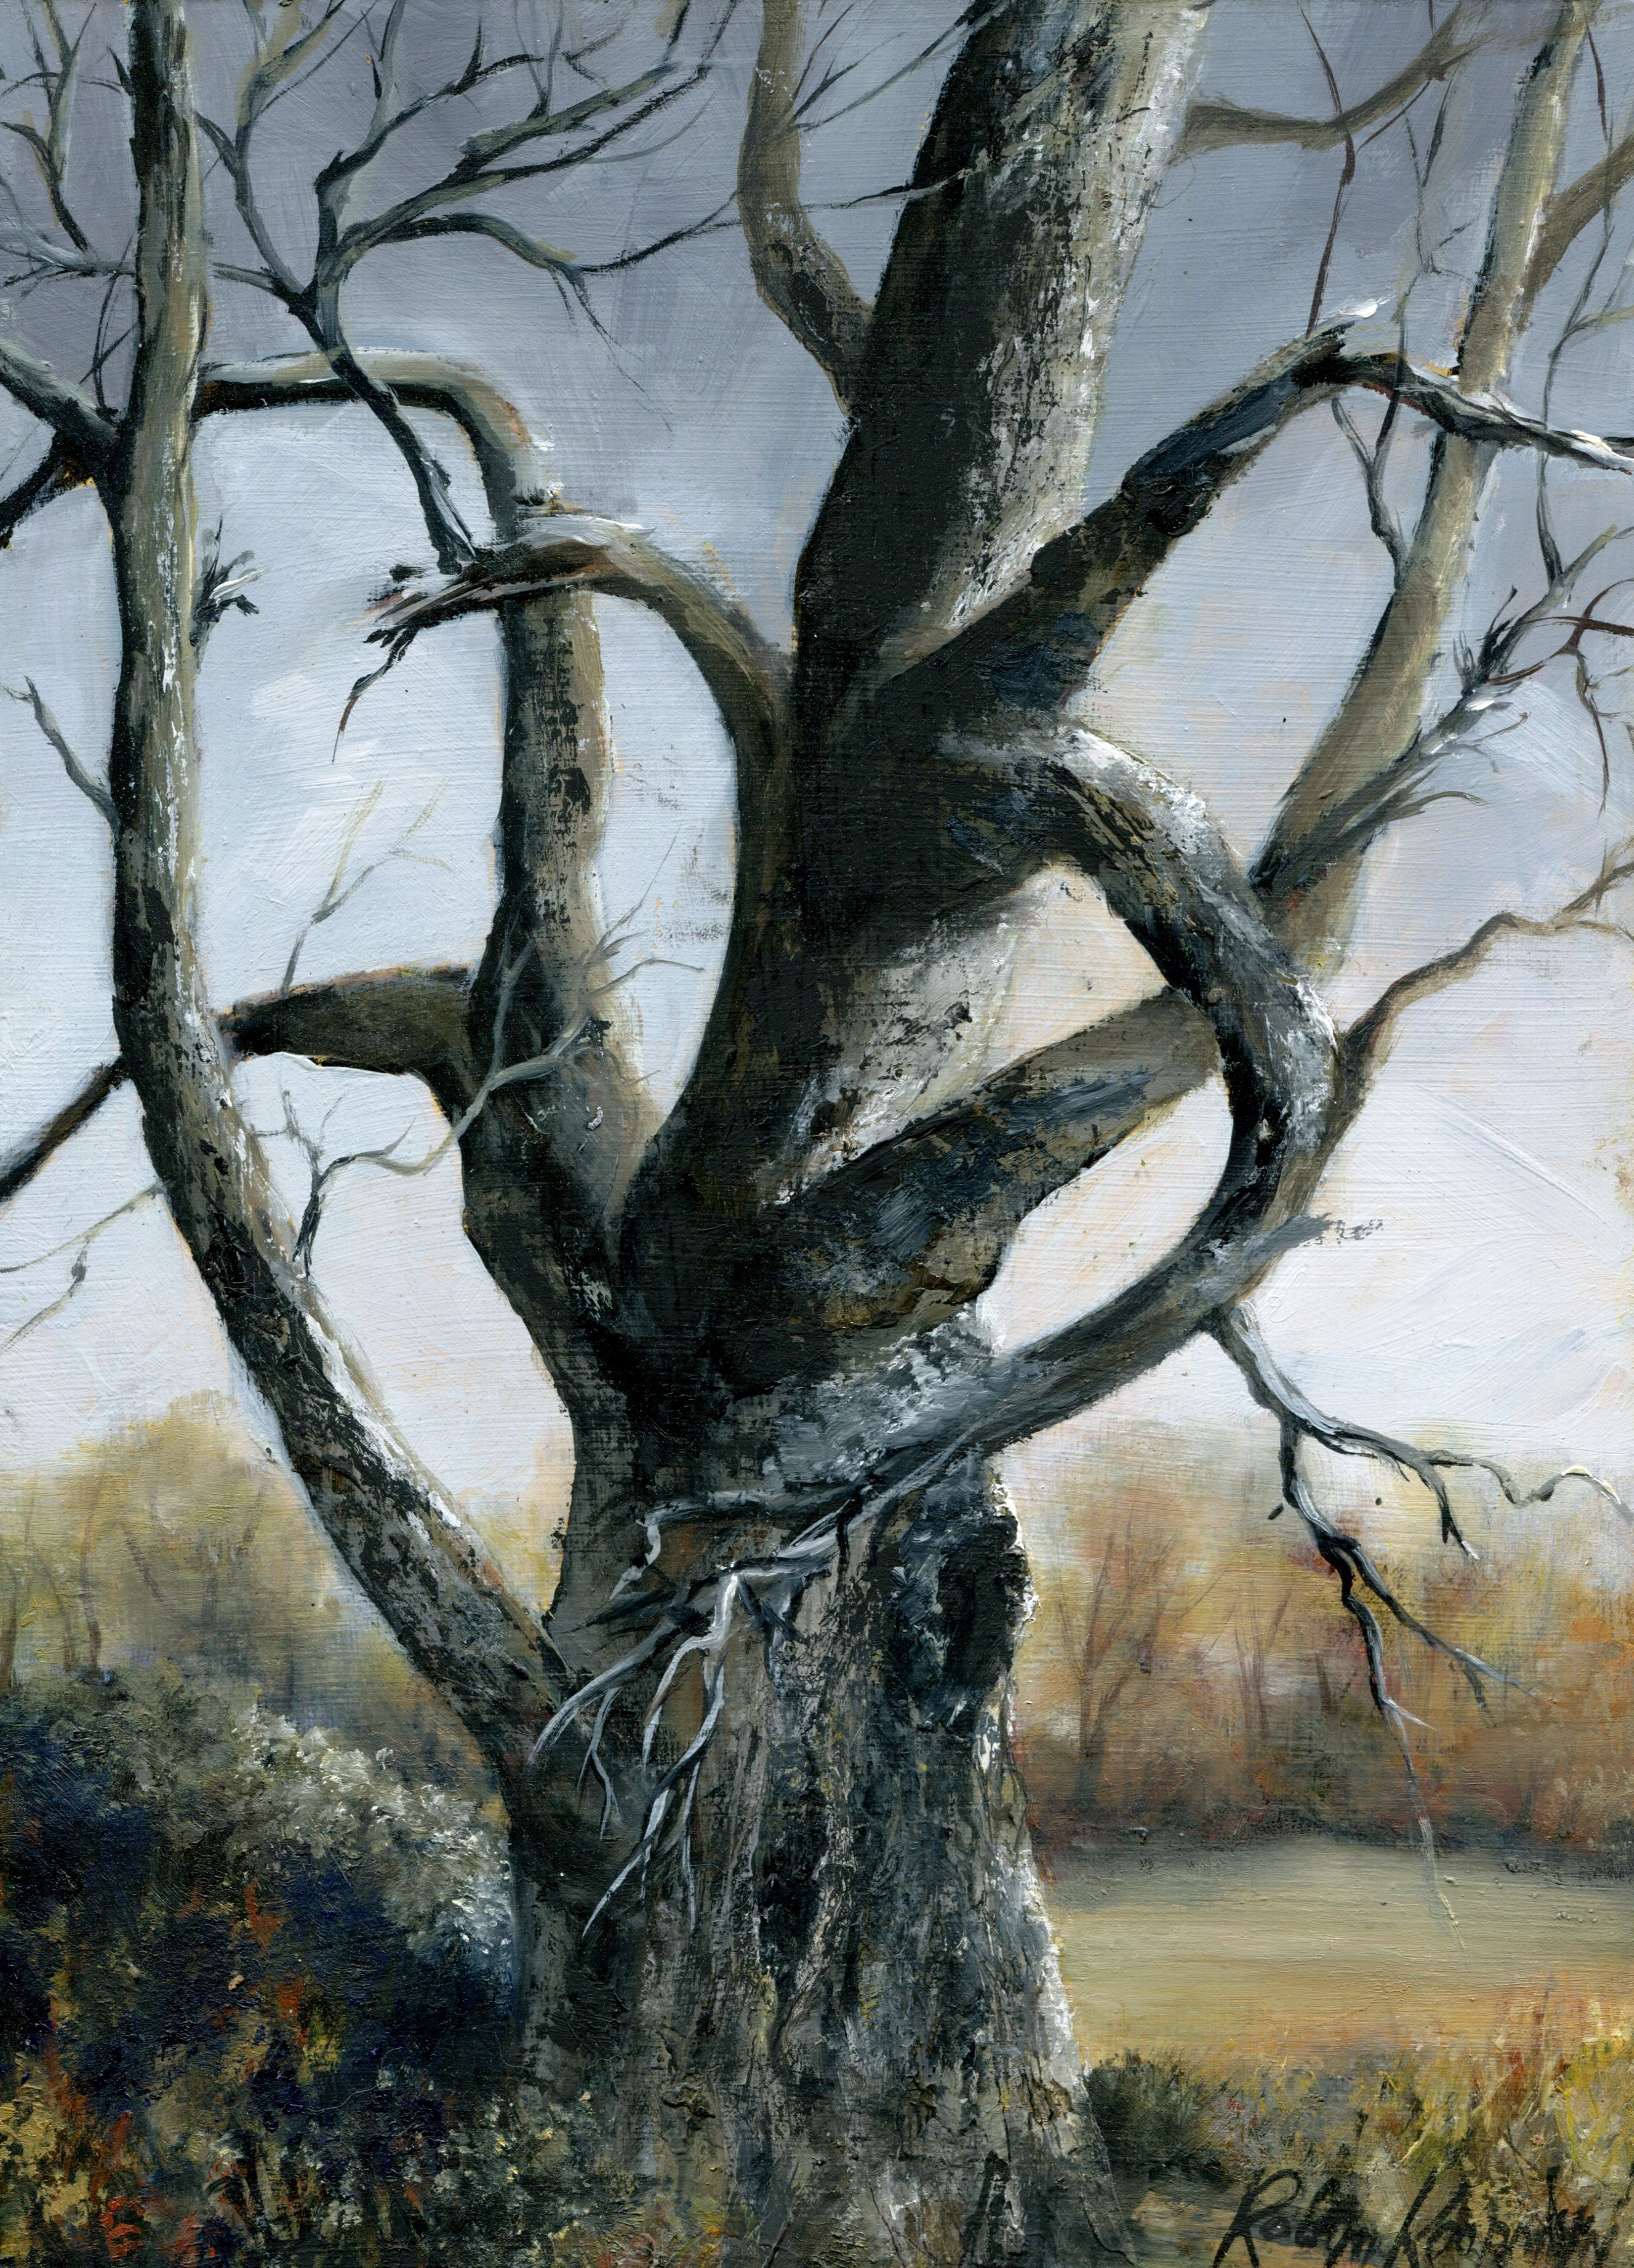 62B ROBYN KOOPMAN, DEAD TREE IN WINTER, OIL ON BOARD